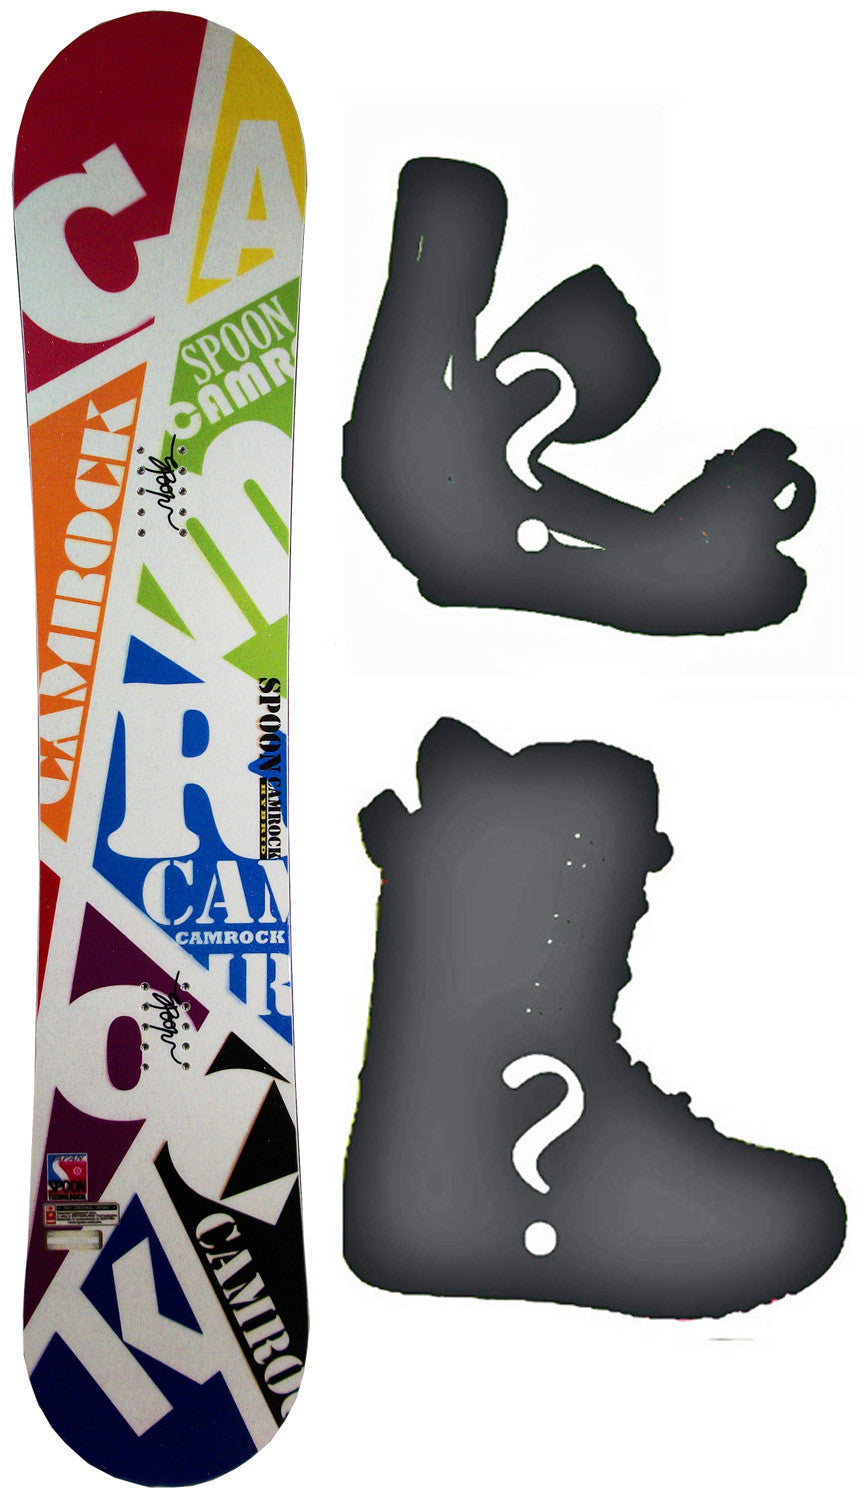 148cm  Spoon Camrock White Line W-Rocker Snowboard, Build a Package with Boots and Bindings